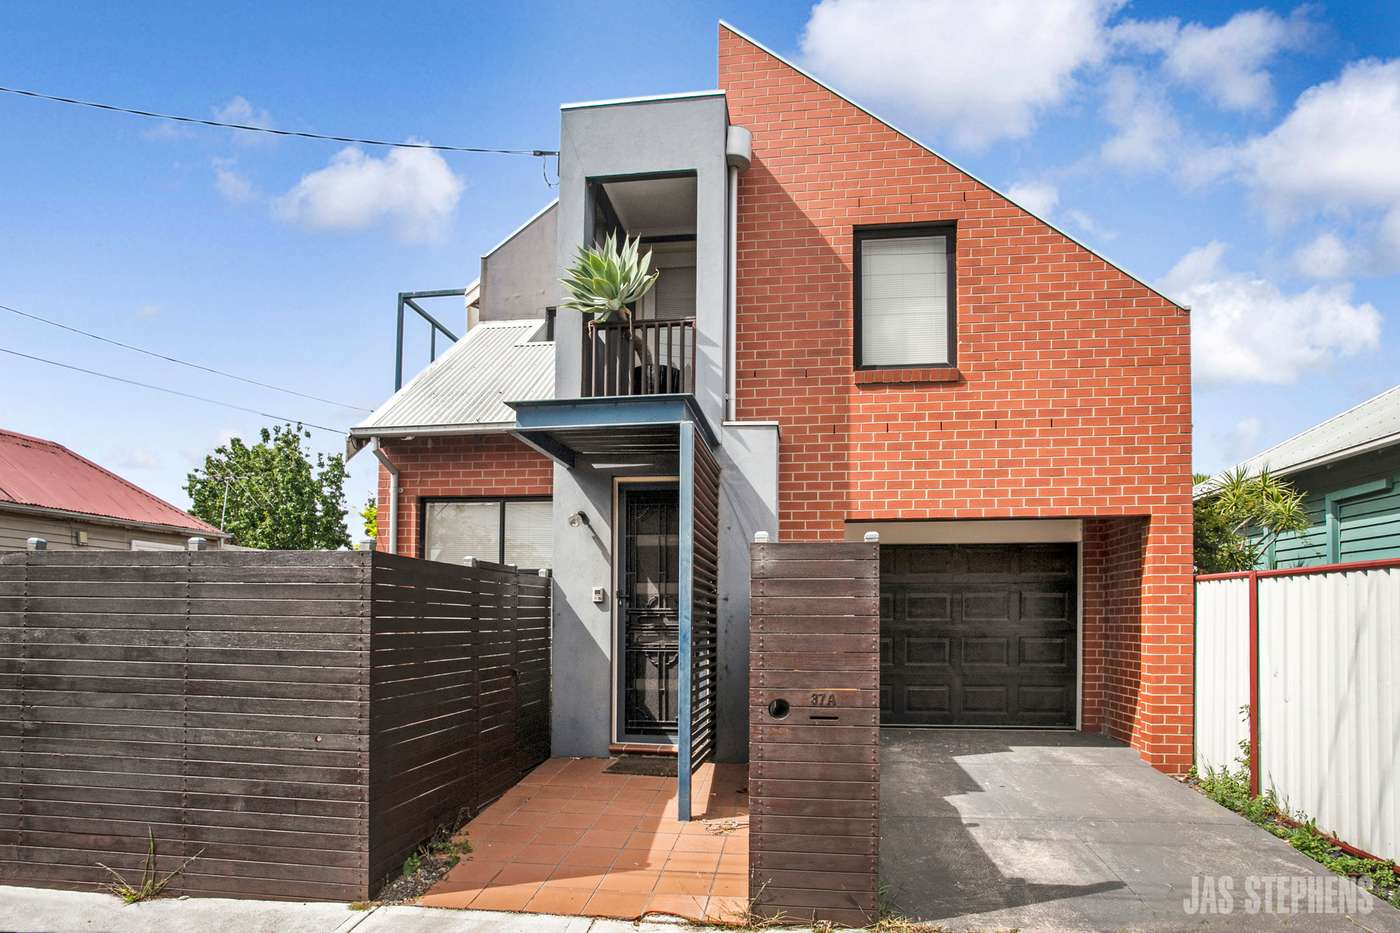 Main view of Homely townhouse listing, 37A Rennie Street, Seddon, VIC 3011